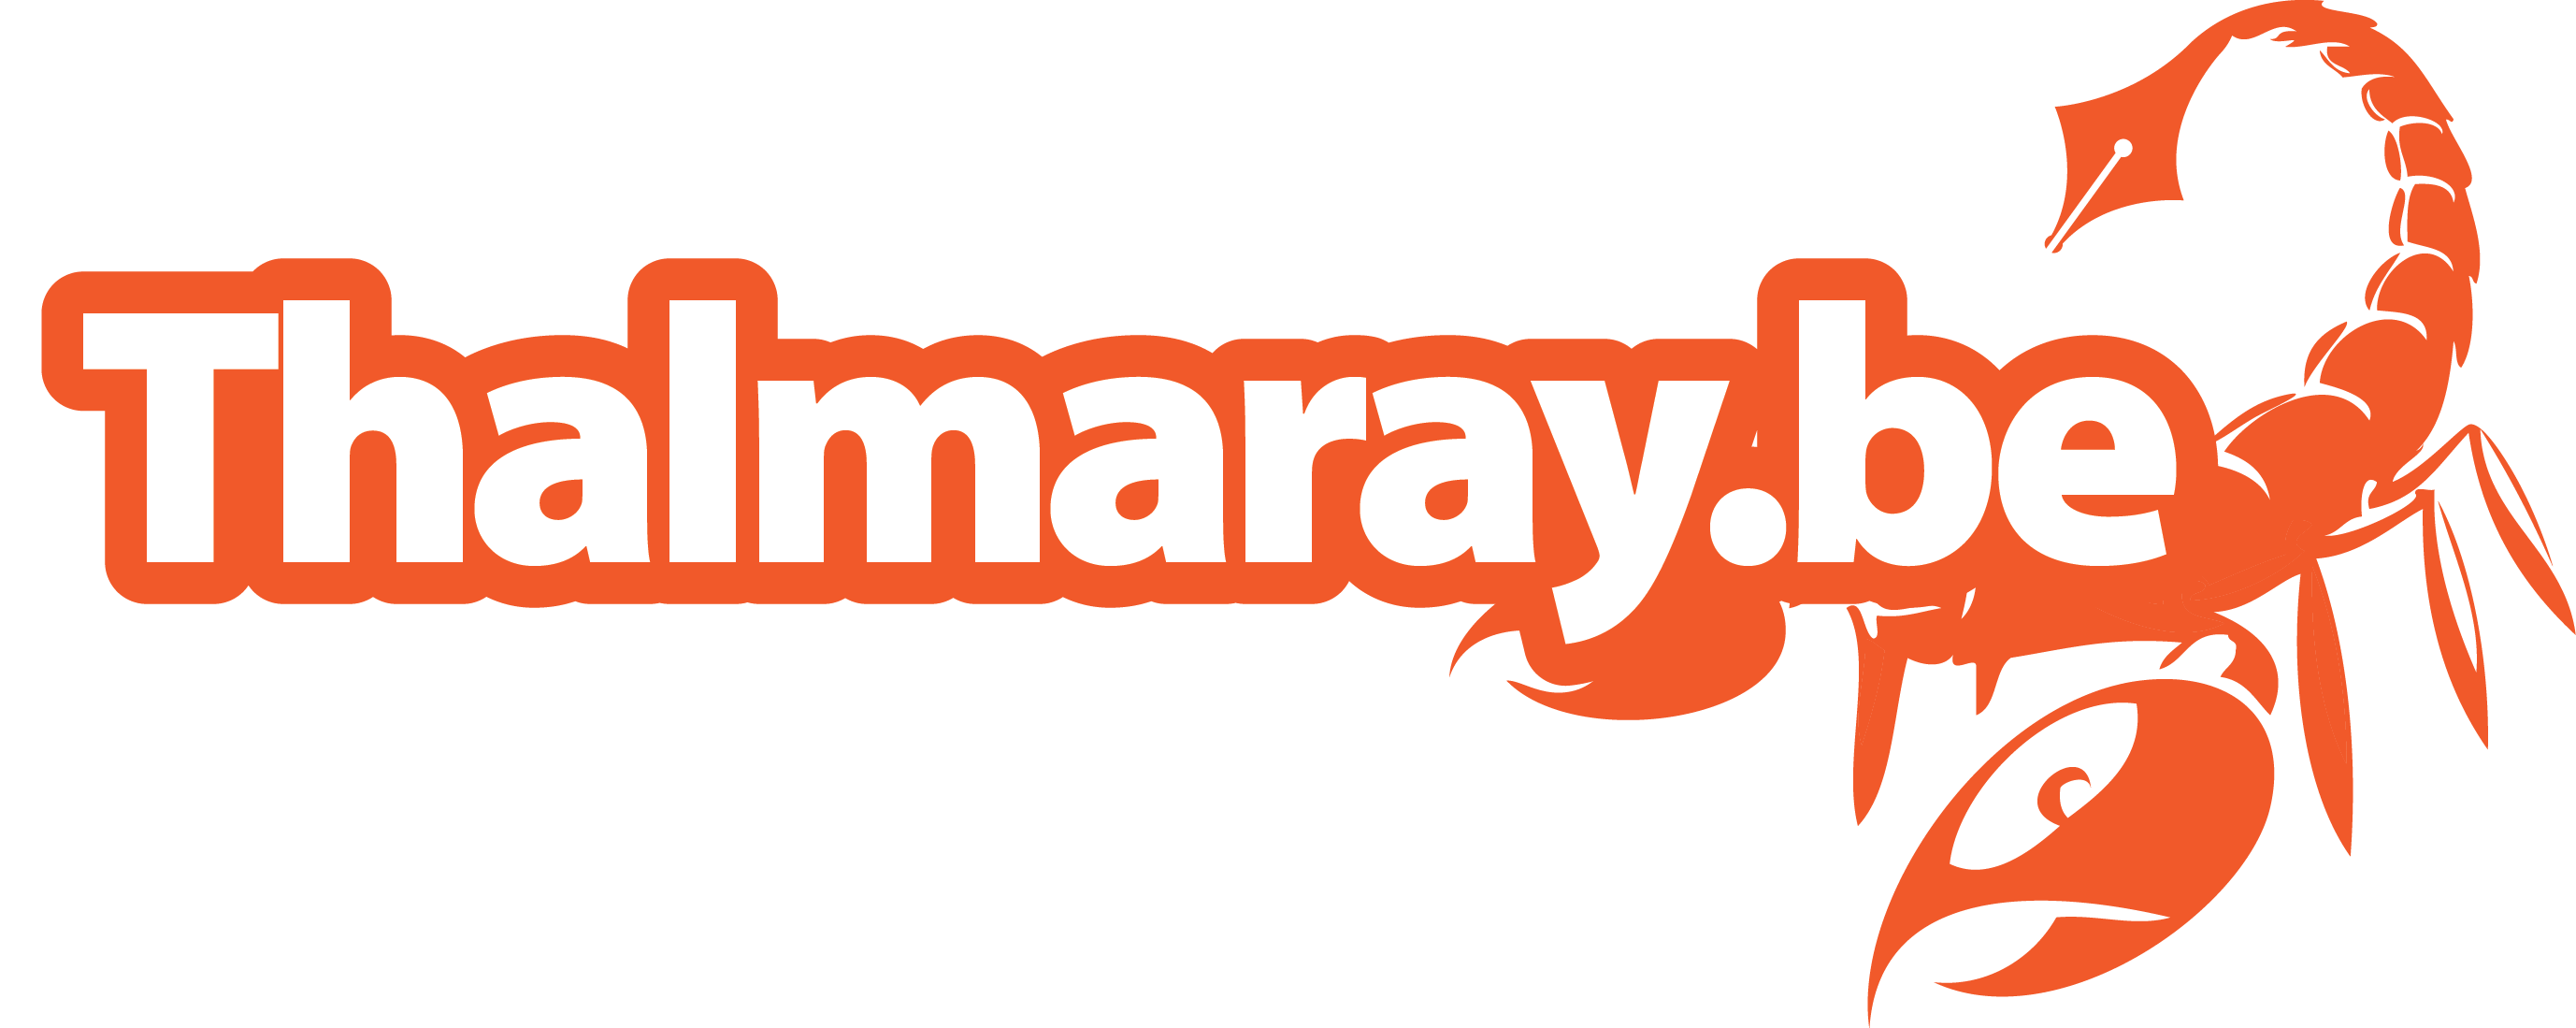 Thalmaray.be